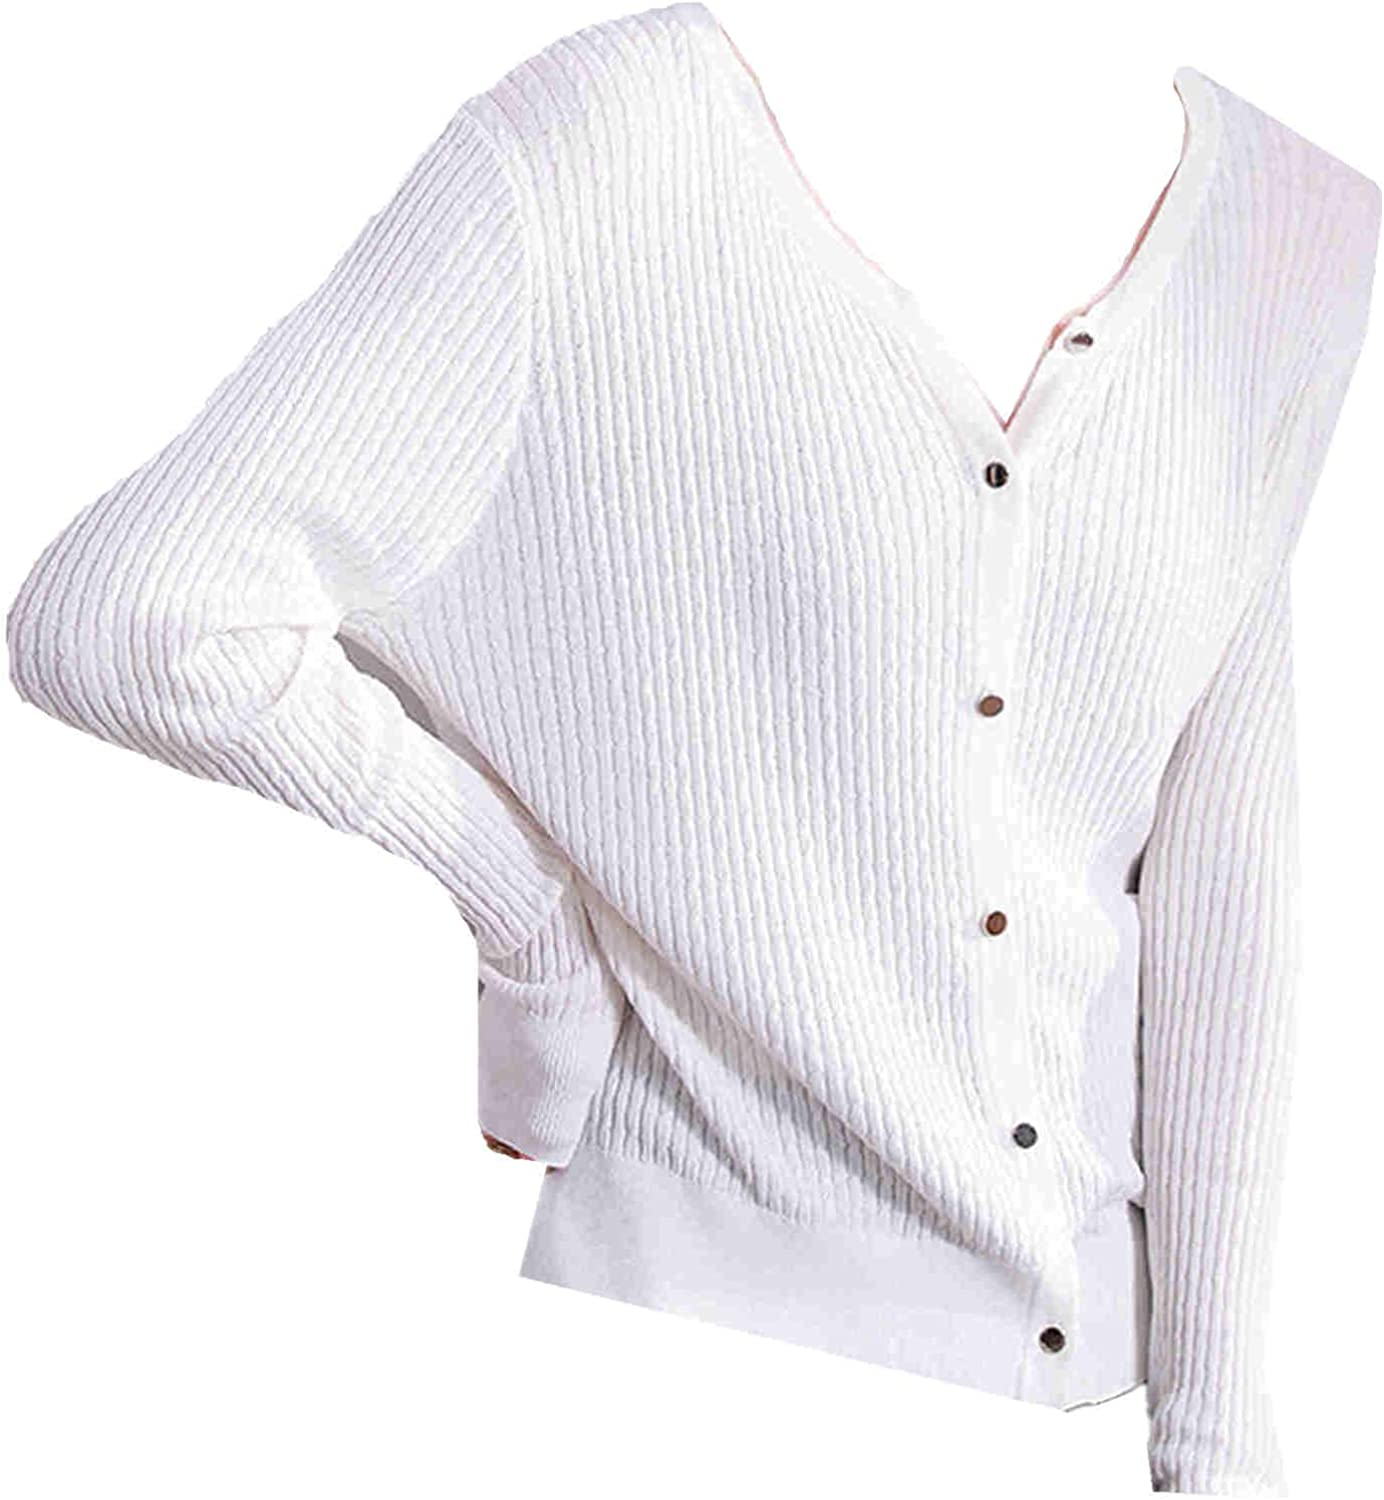 YYCCOO Ice Hemp Knitted supreme Lightweight L Max 52% OFF Summer Cardigan and Spring